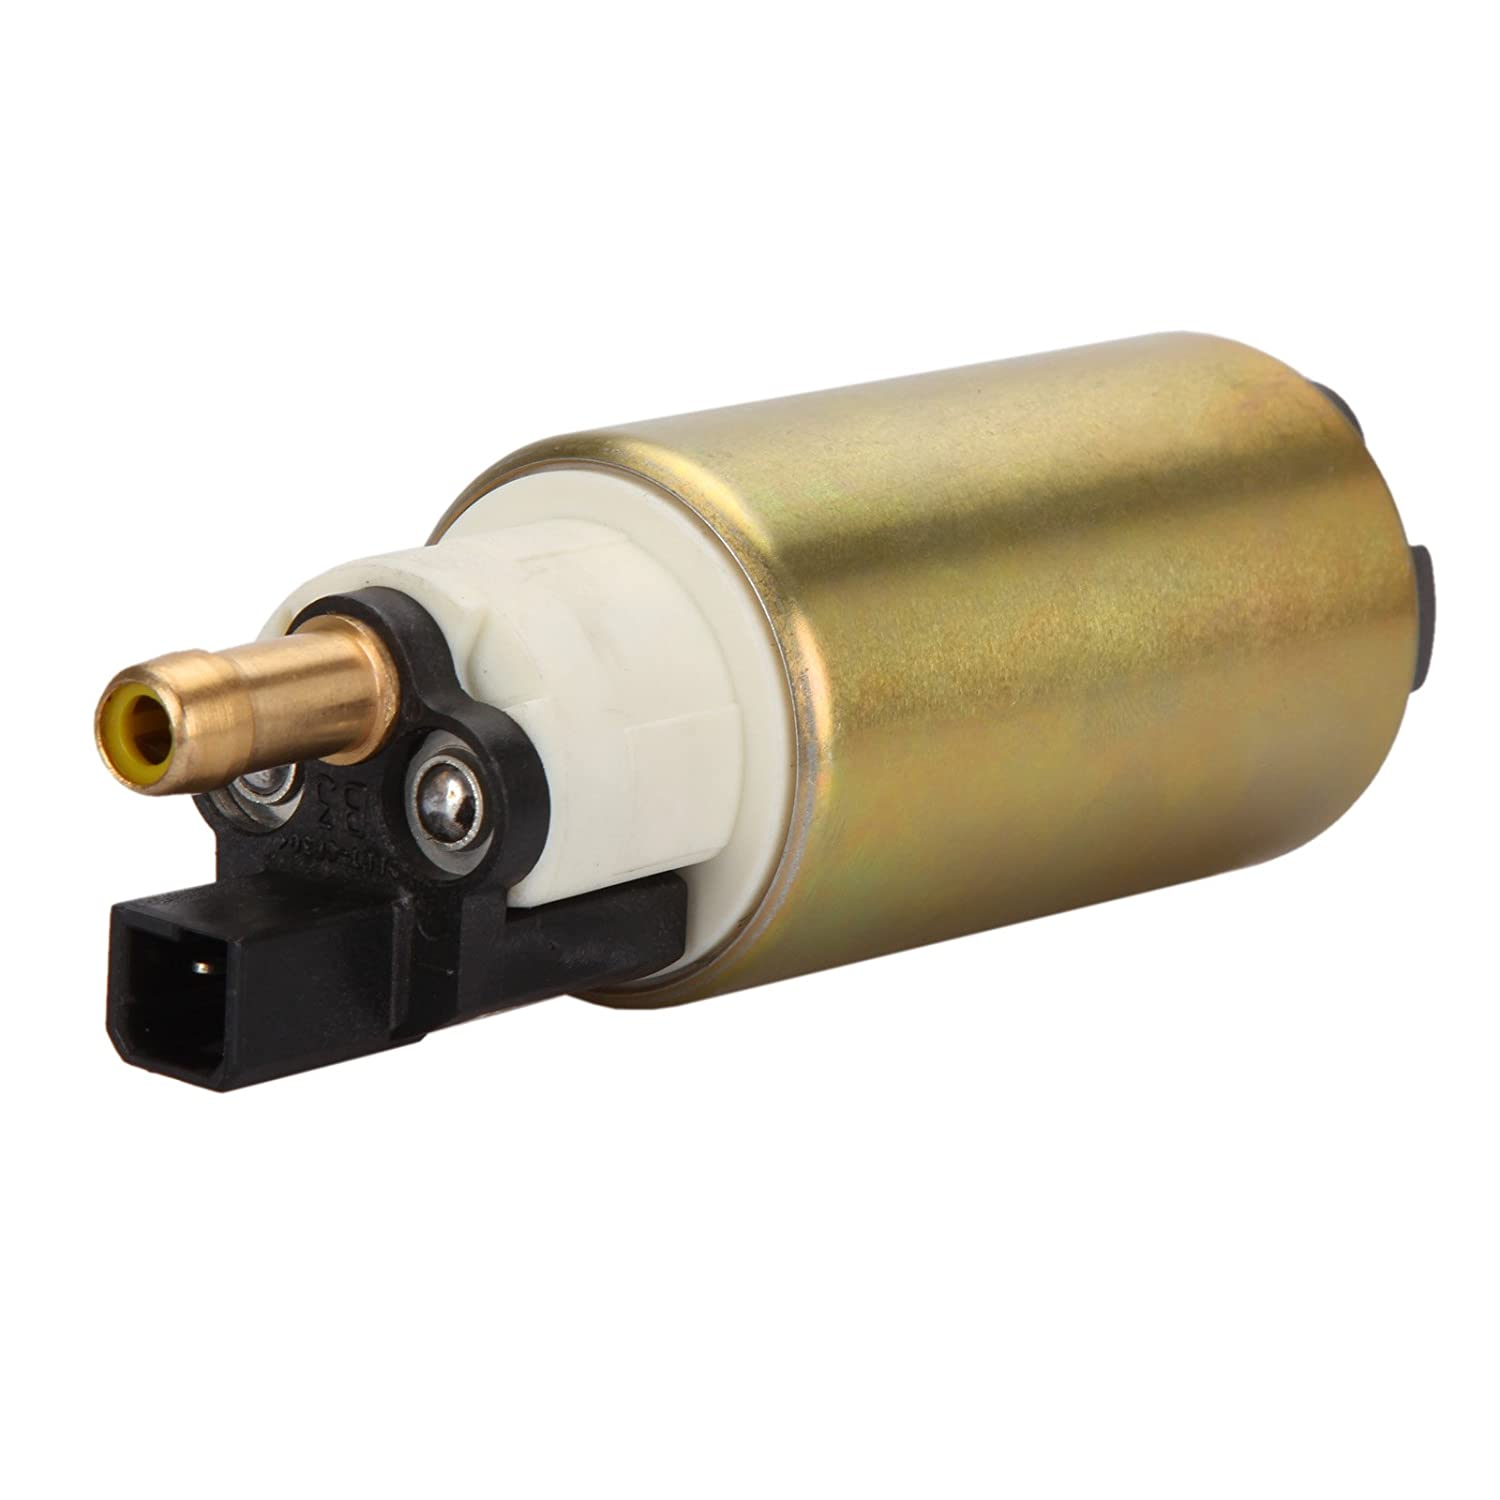 High Performance Aftermarket Electric Intank Fuel Pump with Installation Kit E2157 for Ford Acura Jaguar Mazda Lincoln Mercury From Madlife Garage